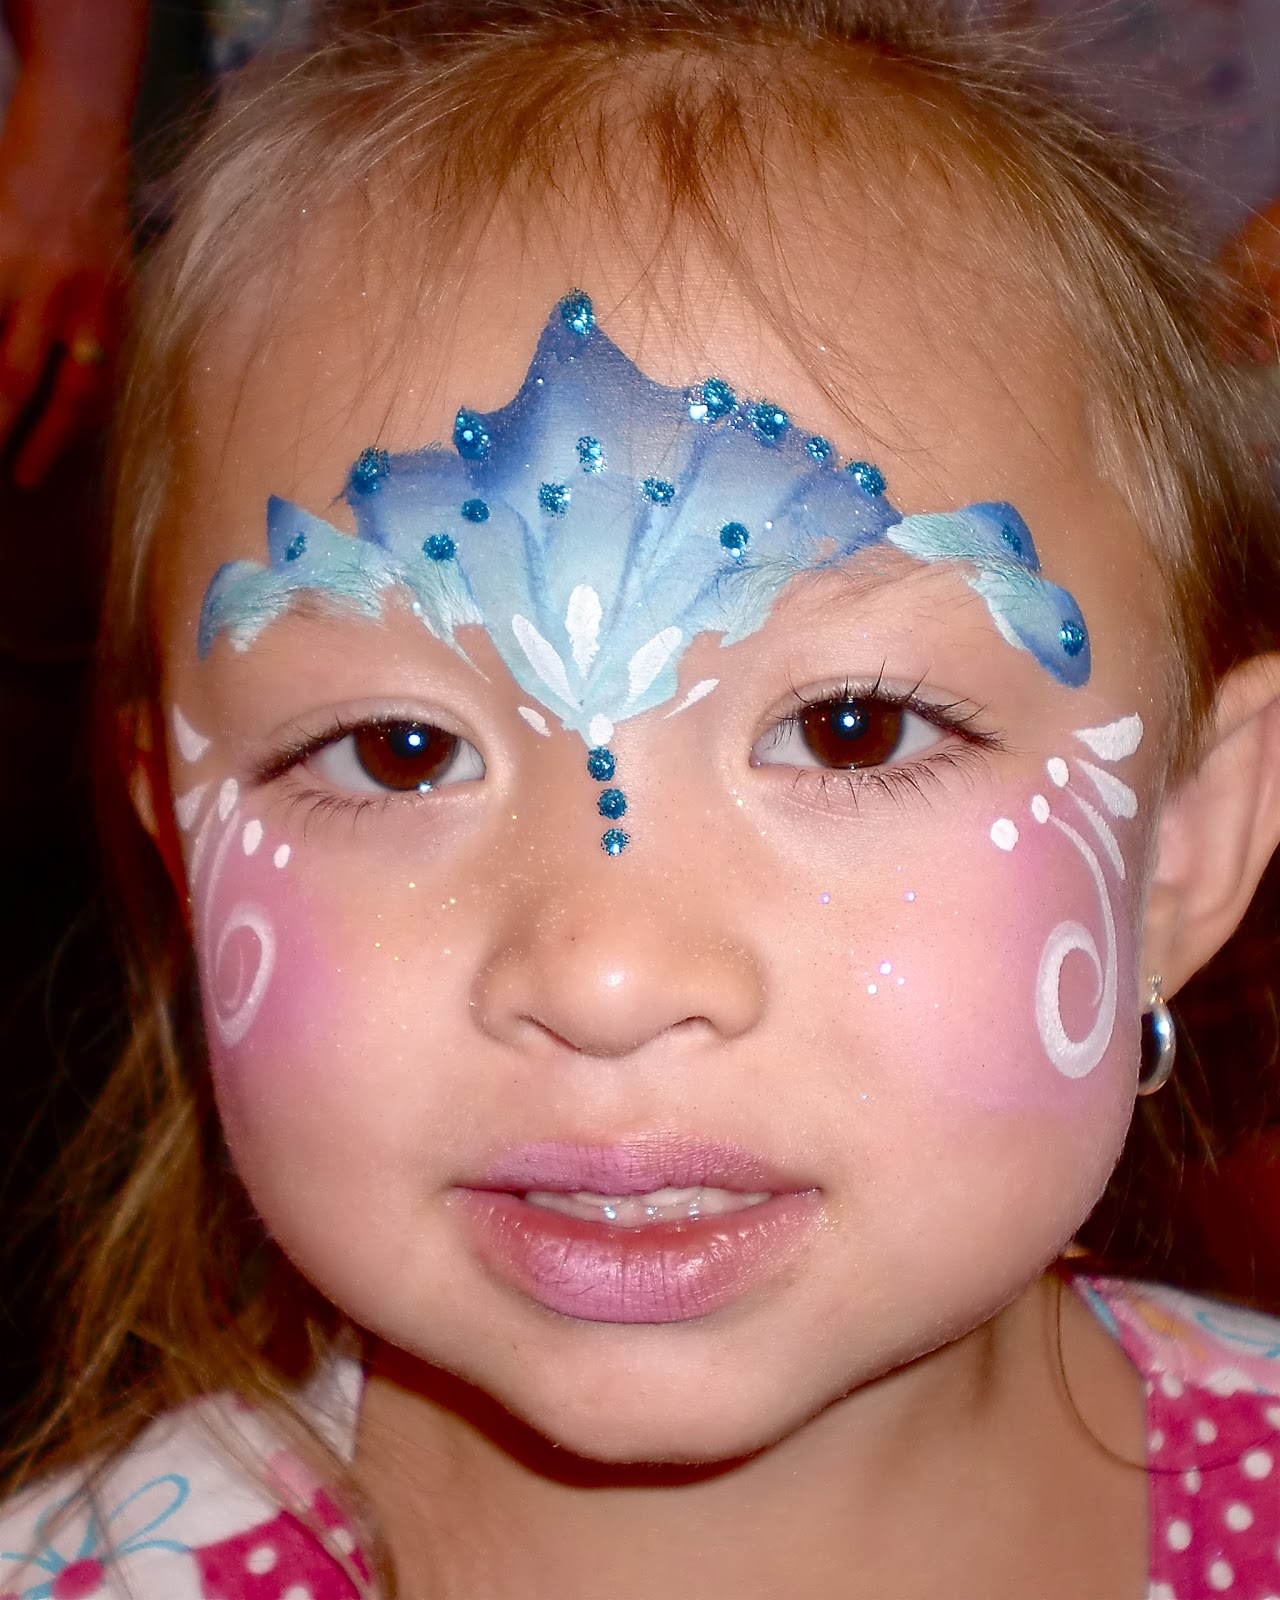 Face Paint The Story Of Makeup Amazon Co Uk Lisa: Face Painting Illusions And Balloon Art, LLC: Face